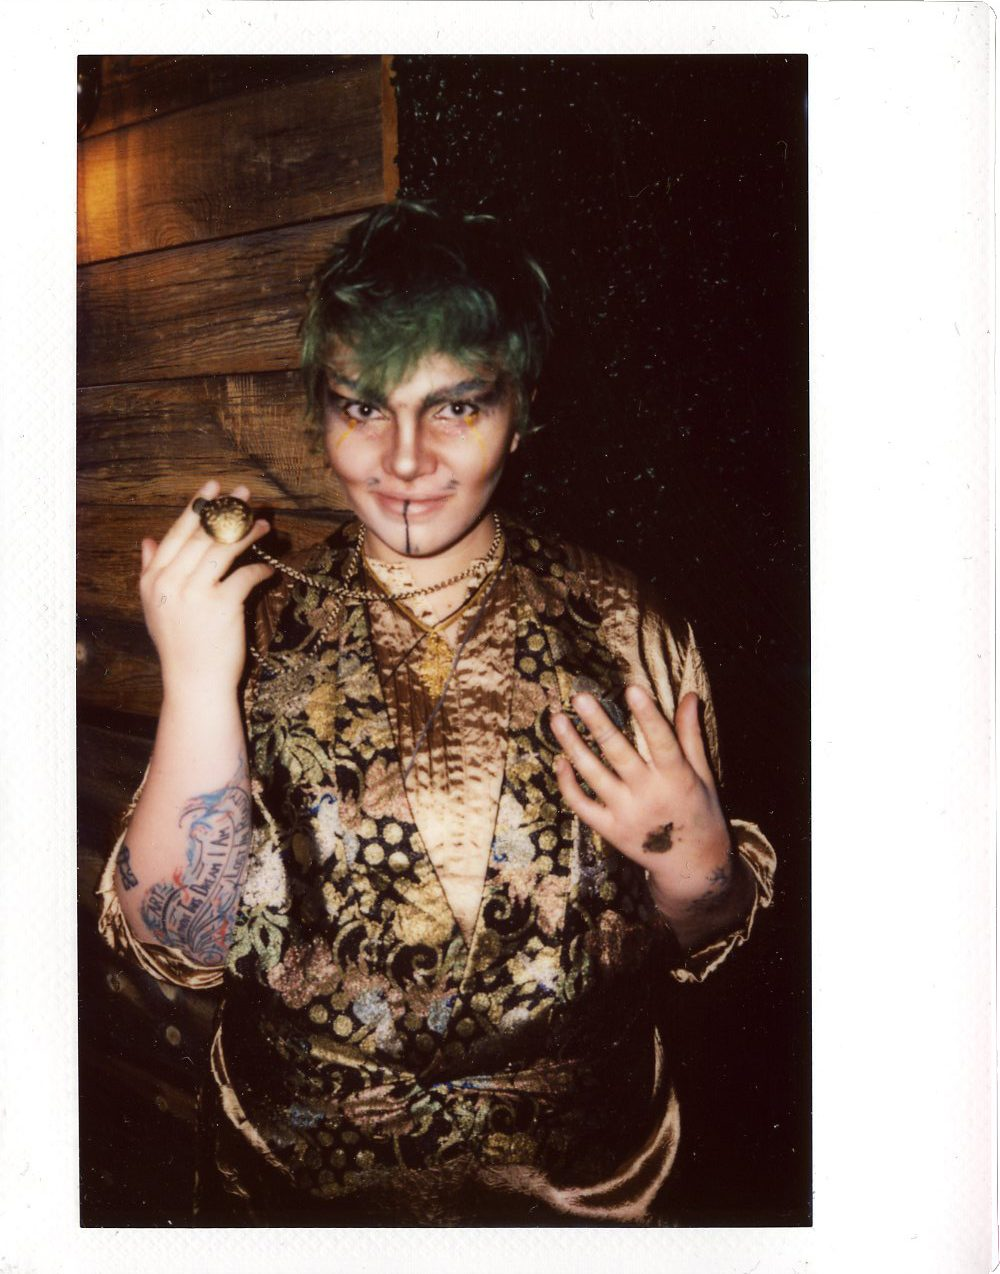 Young Jude grew up in a small Wyoming town, where they were one of the only queer individuals around. They relocated to Utah in 2014, discovered the drag community and began experimenting with gender expression. Photo: ThatGuyGil